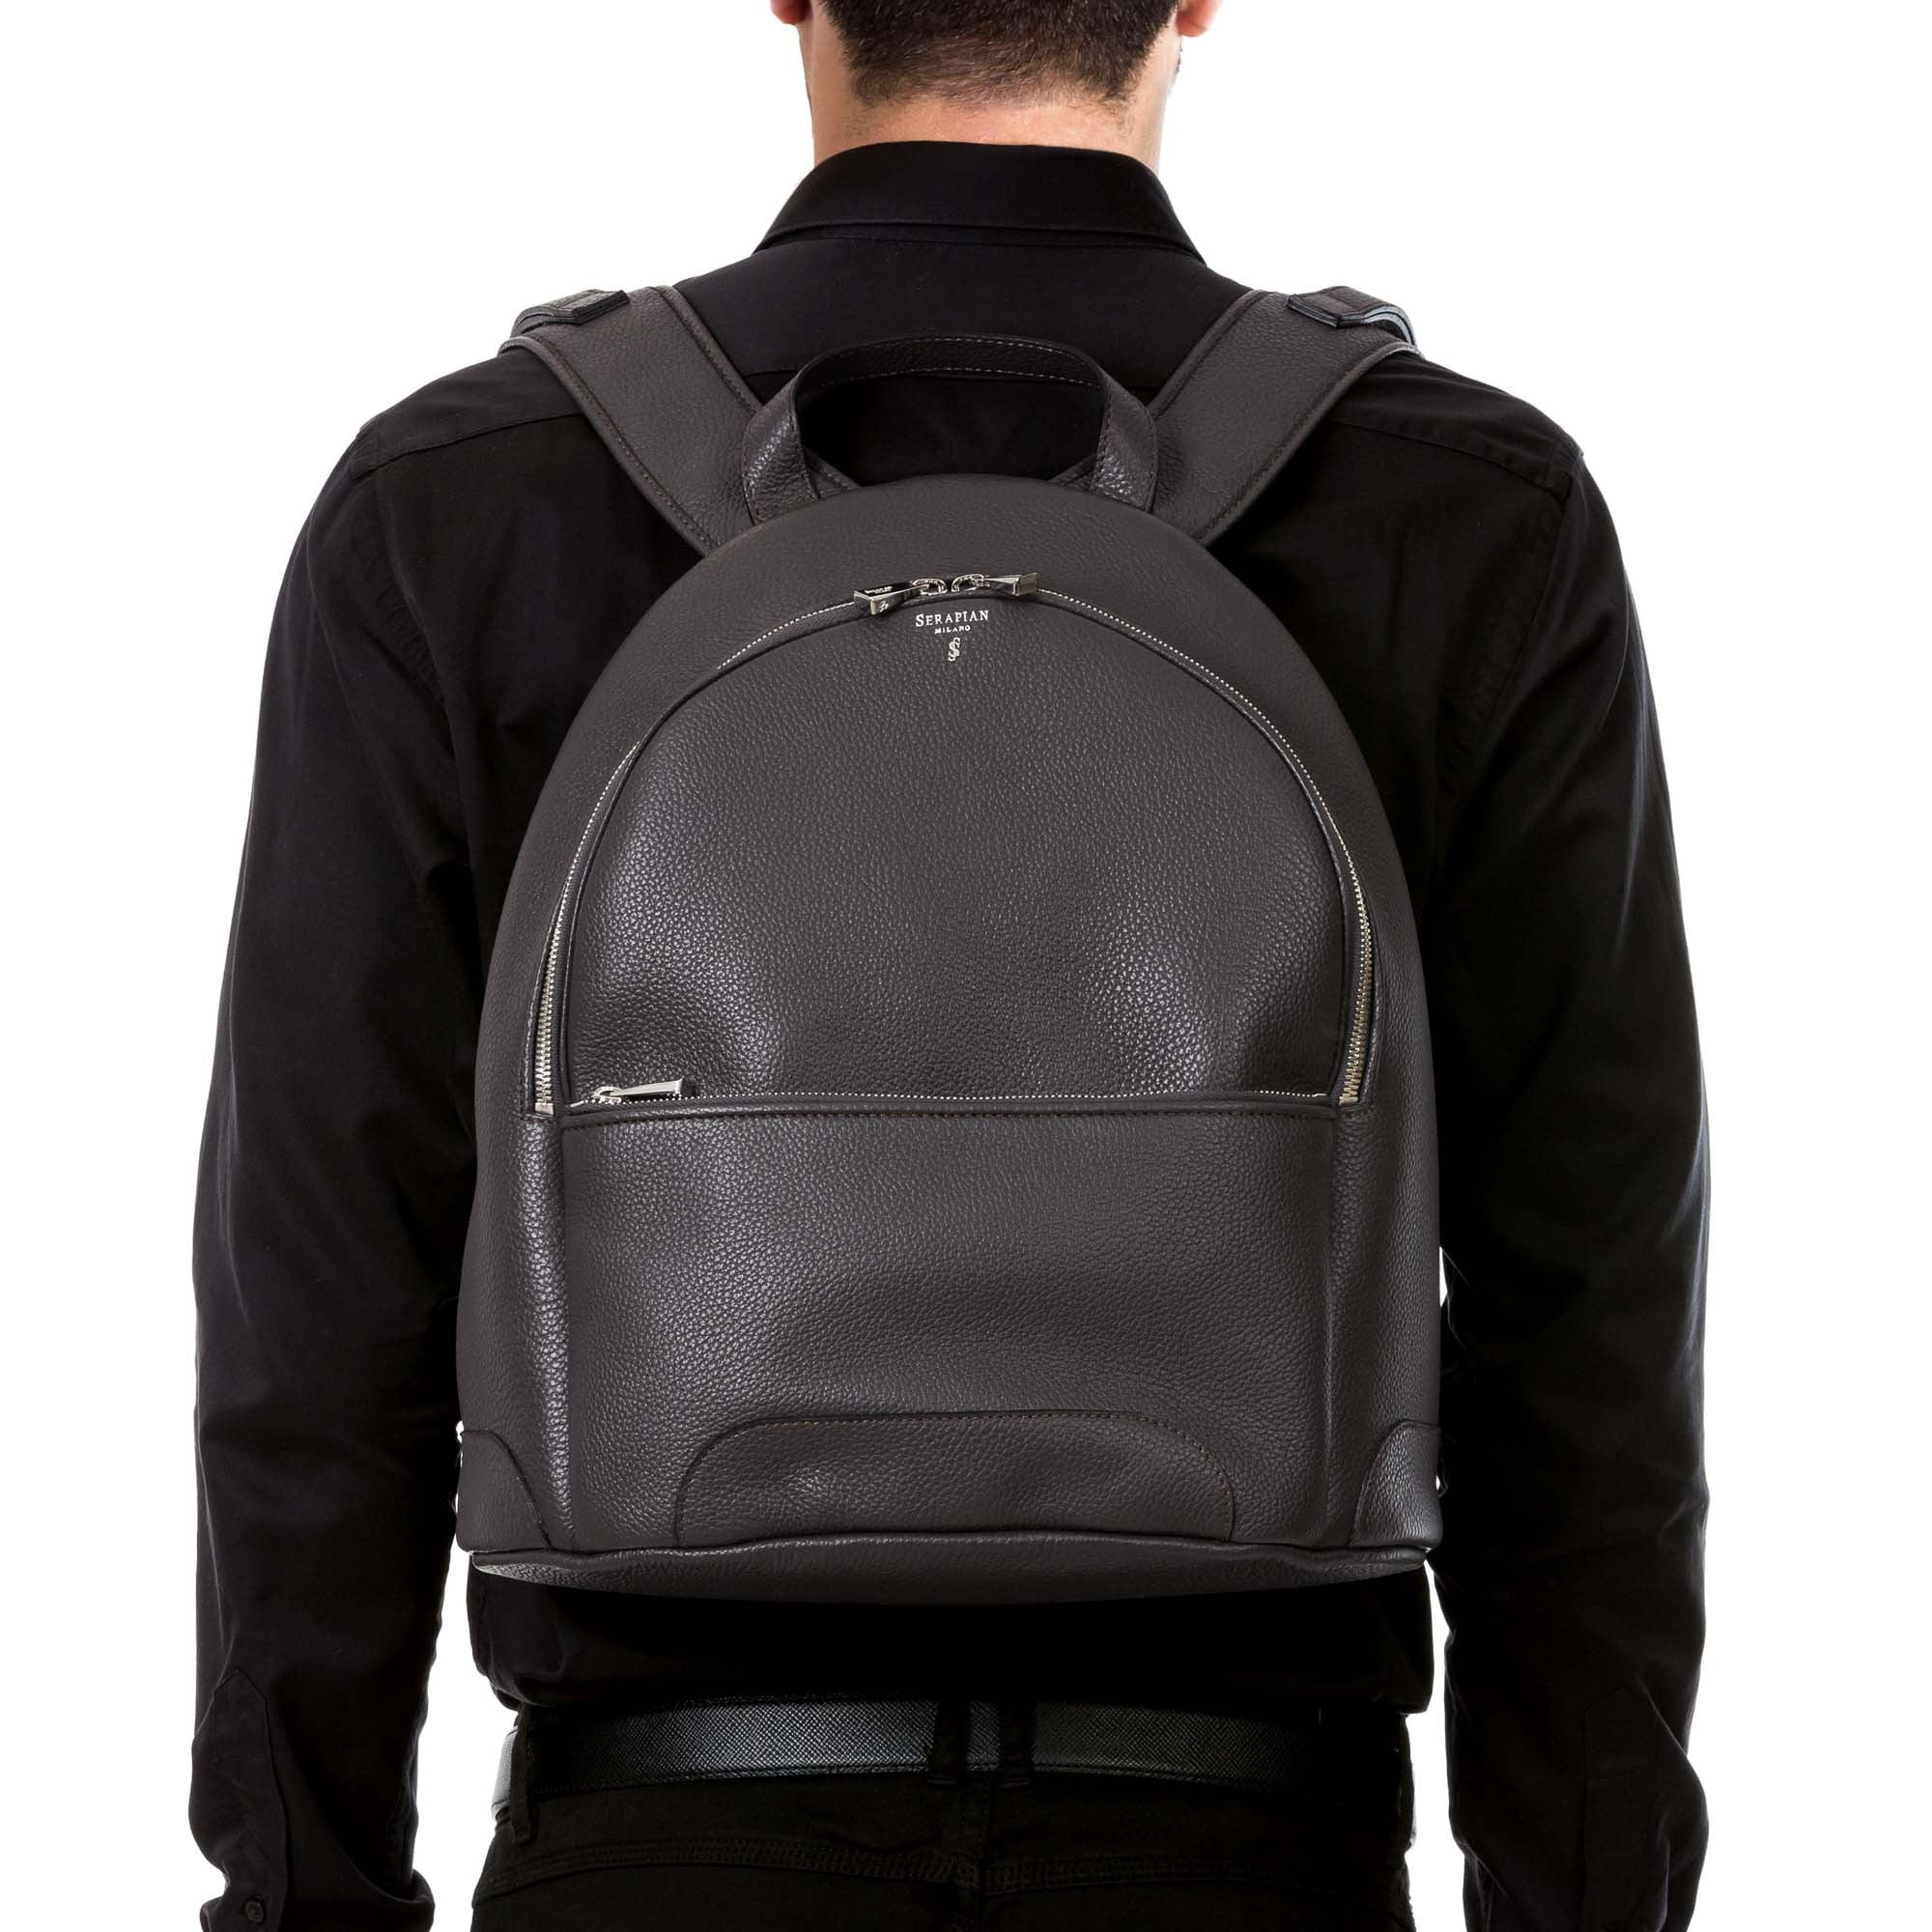 Backpack Cachemire - Anthracite Grey